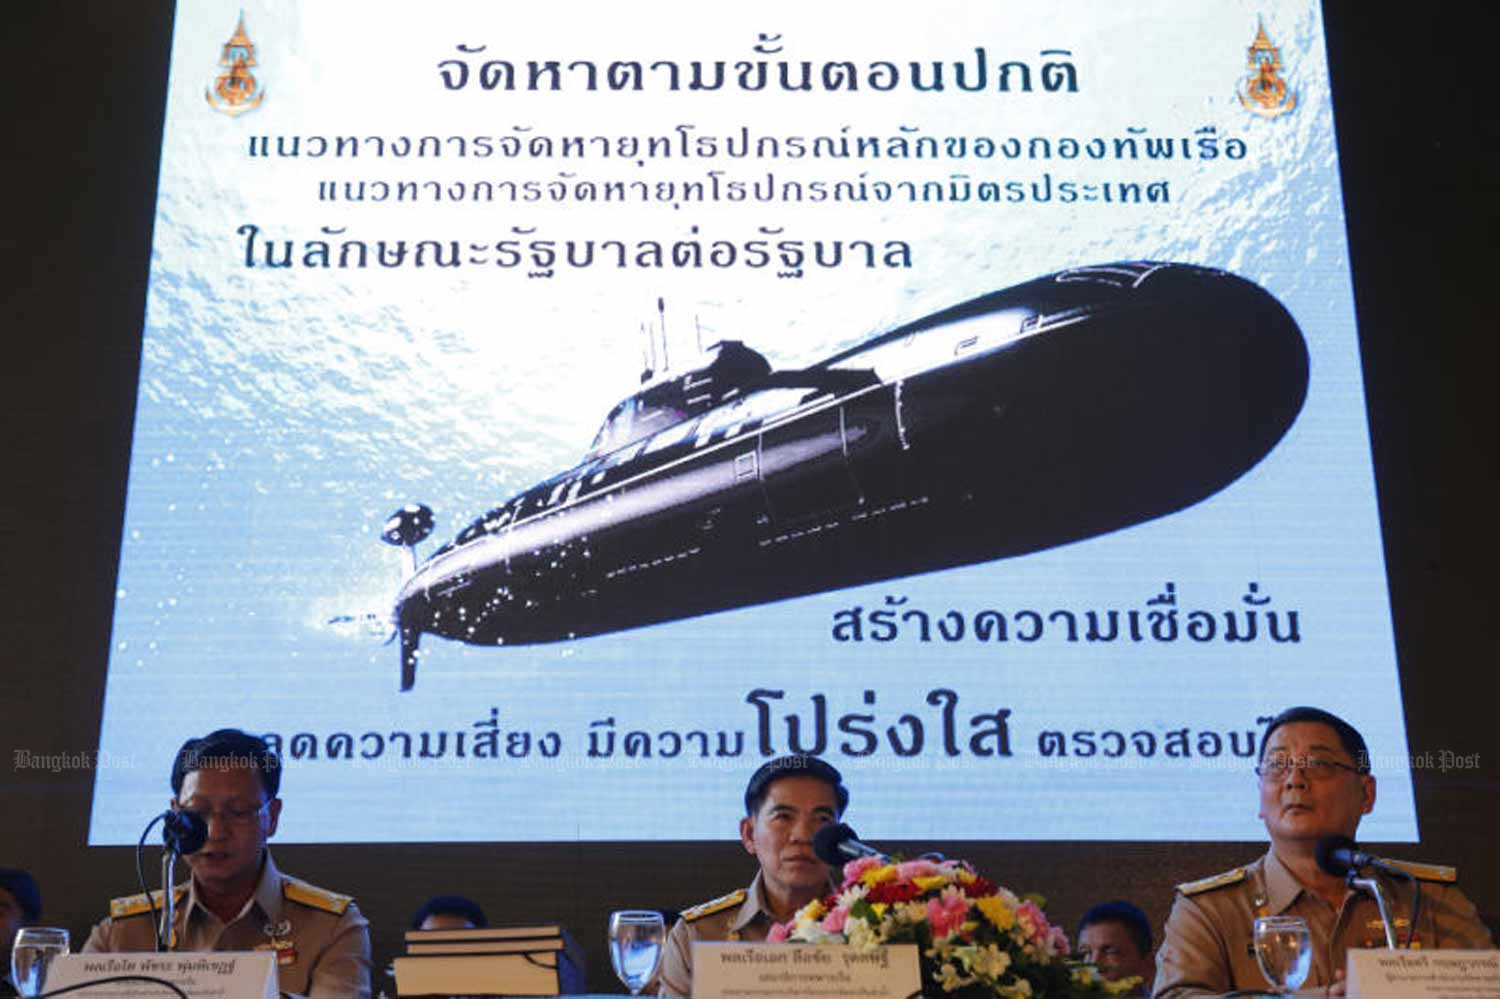 The navy addresses lingering questions over its controversial submarine purchase plan at a press conference in 2017. (File photo by Wichan Charoenkiatpakul)